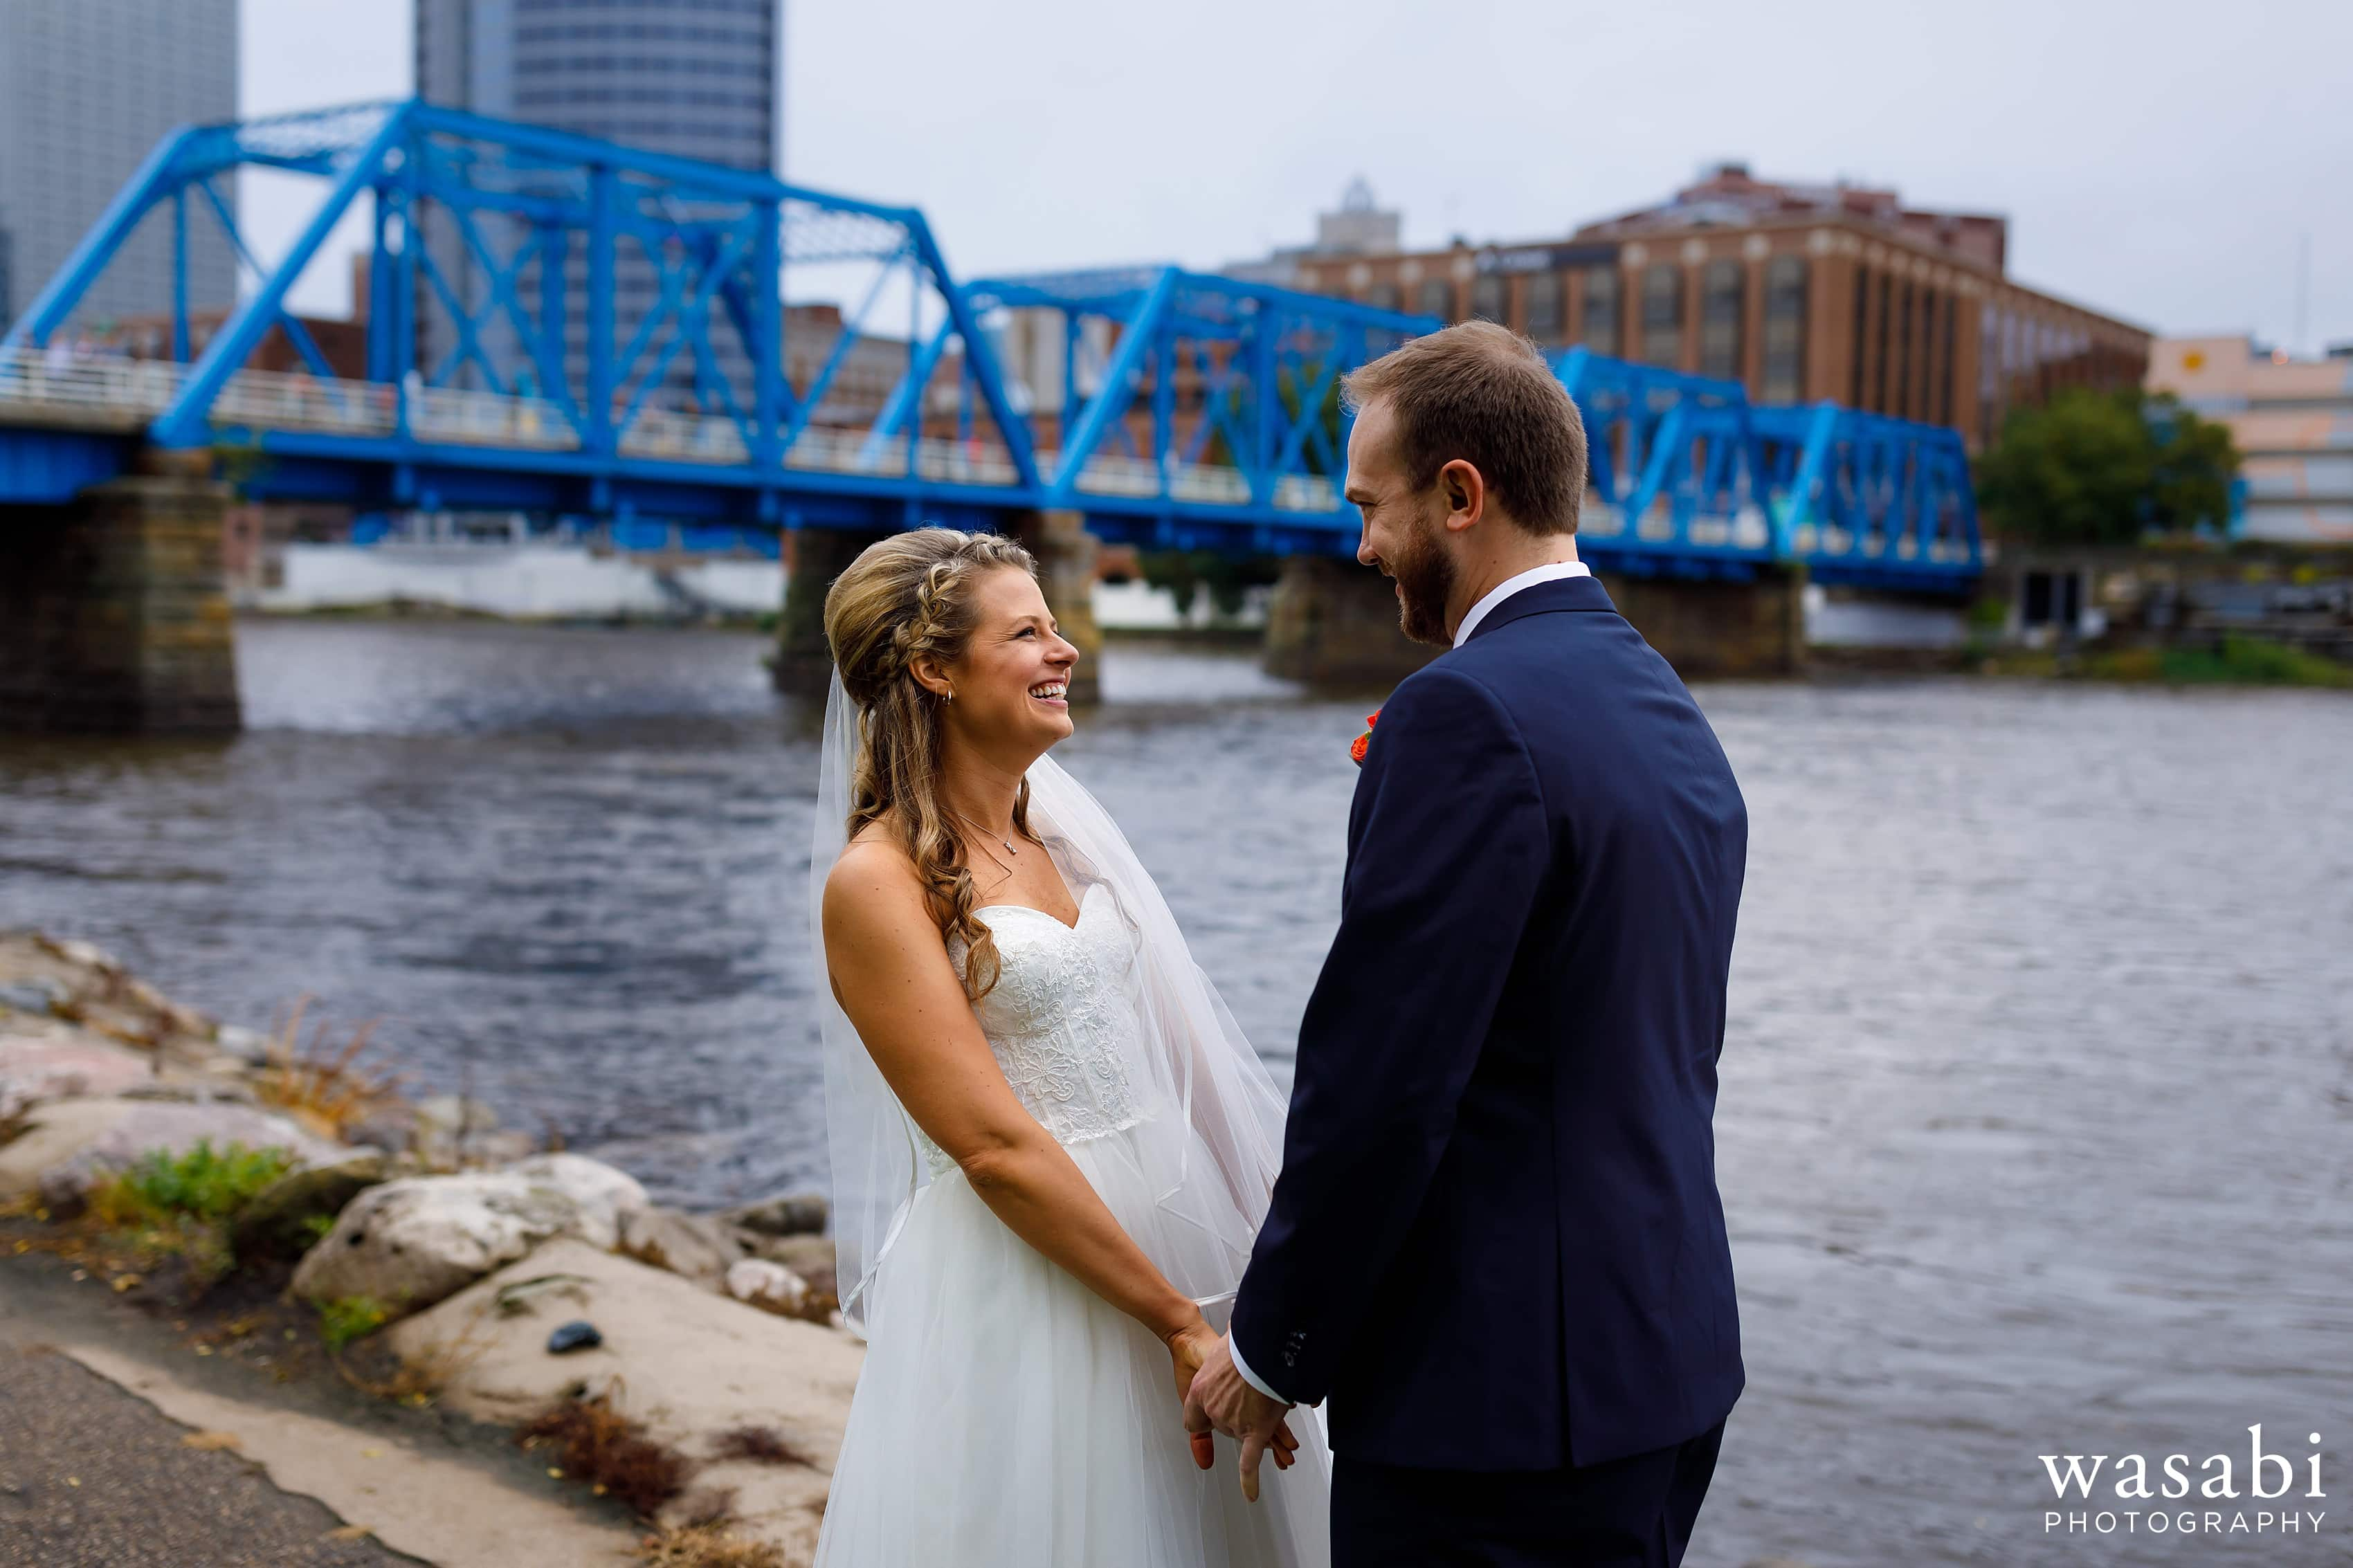 bride and groom first look on river by Blue Bridge in Grand Rapids